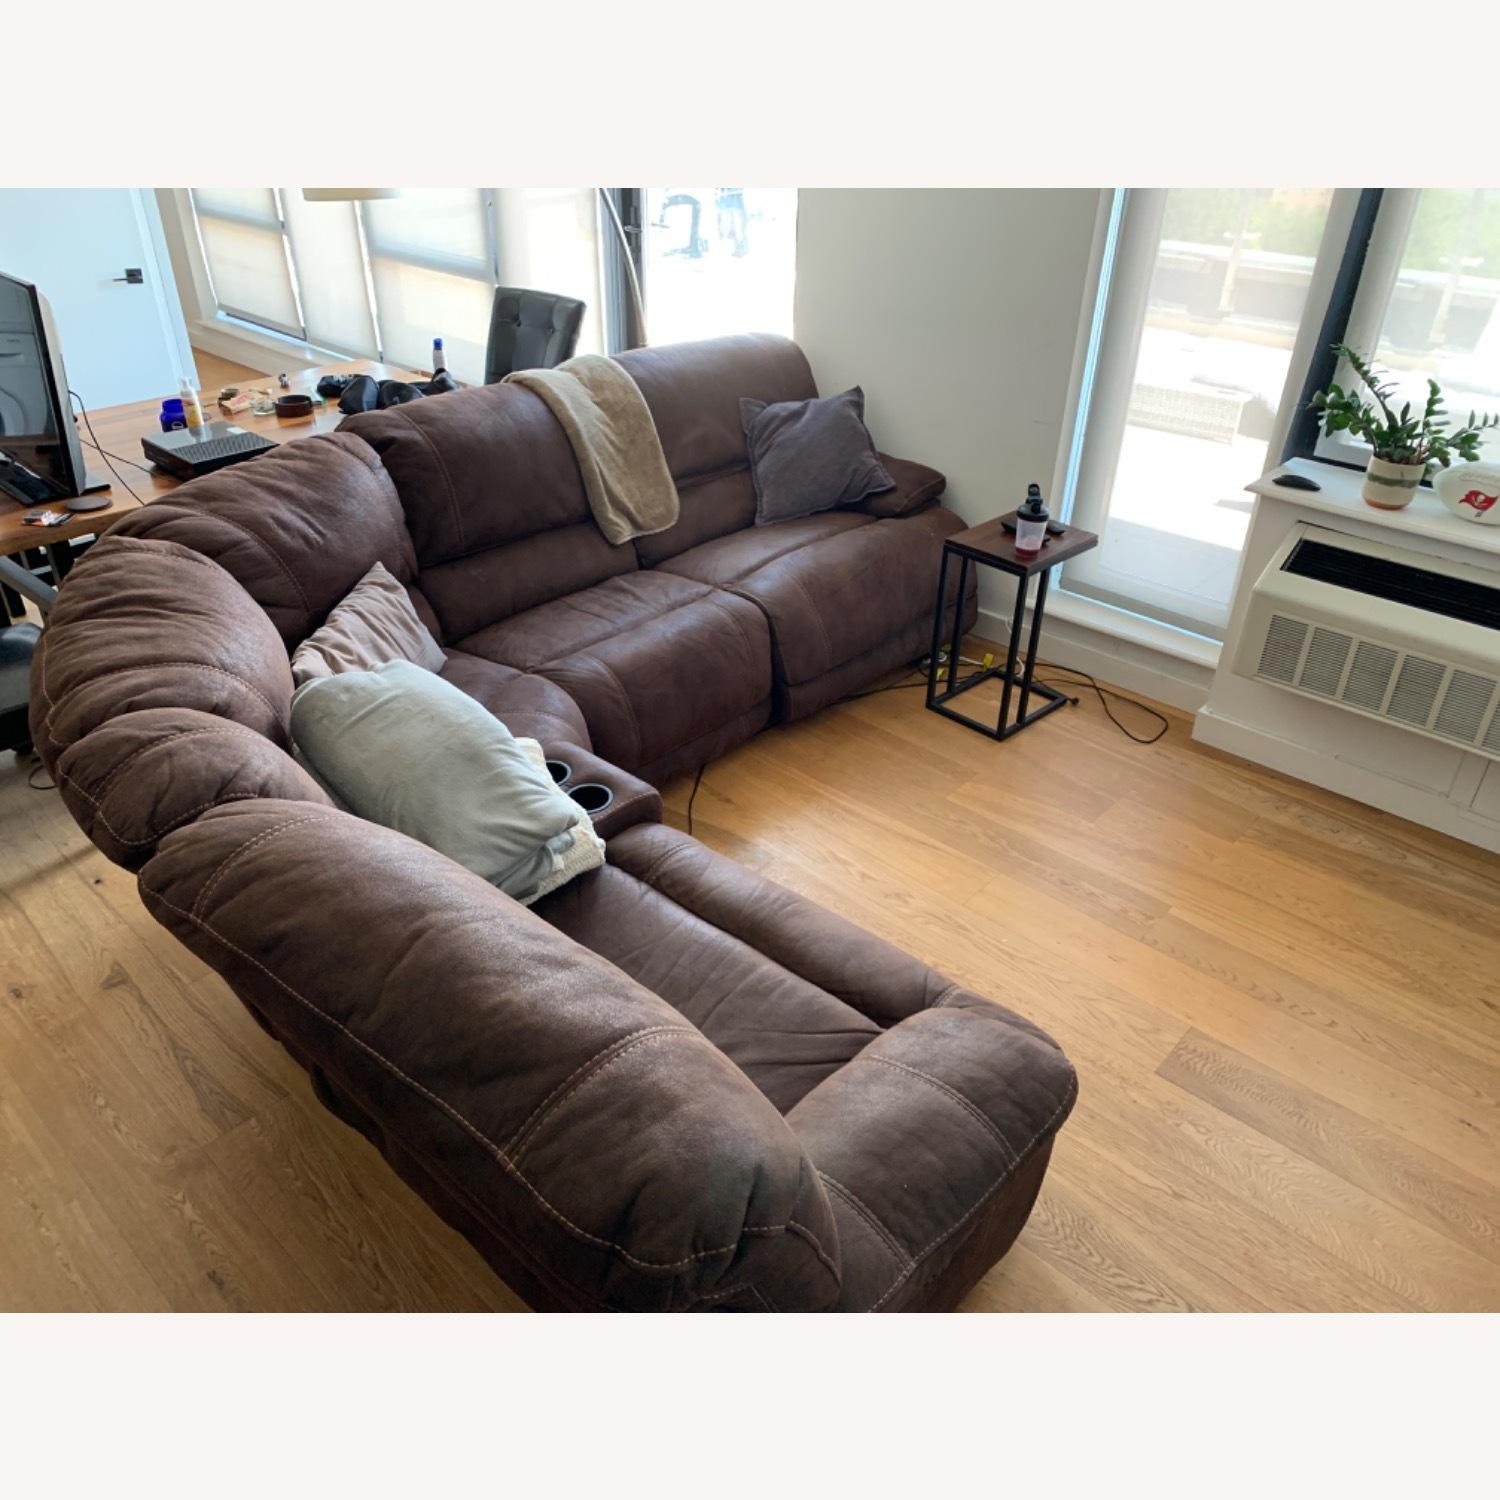 Pottery Barn Brown Leather 5 Piece Sectional - image-3